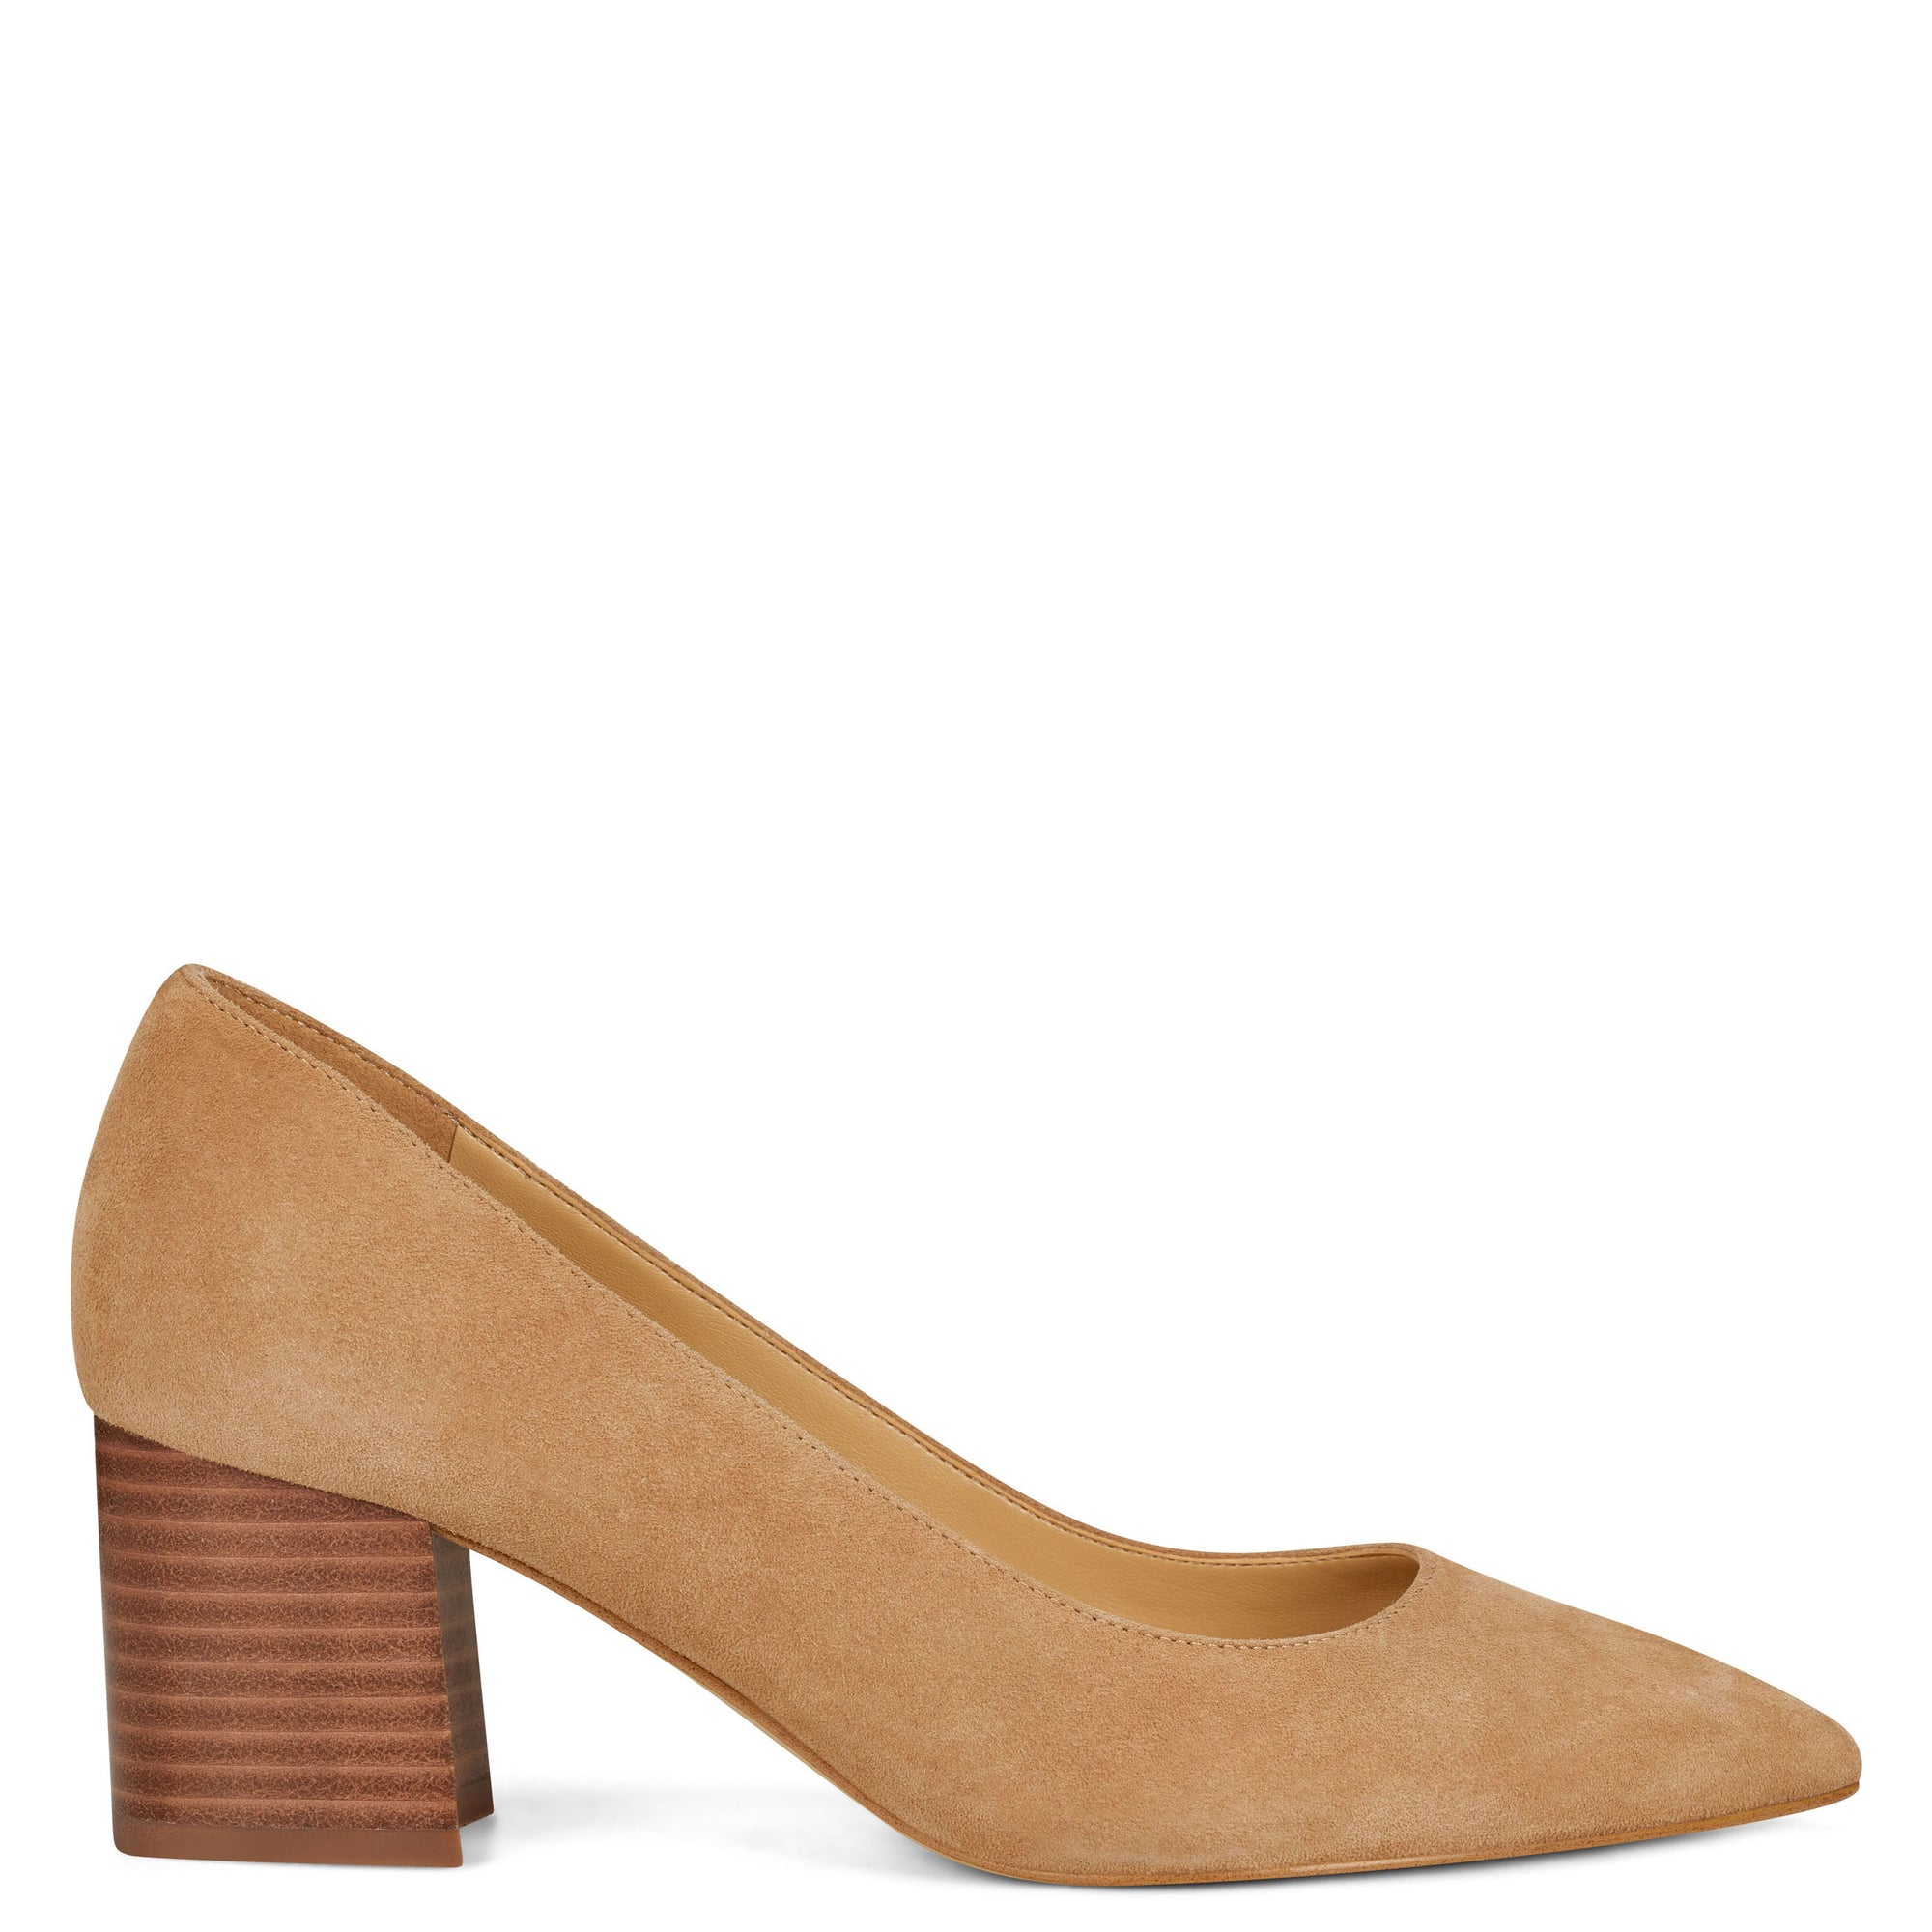 tves-dress-pumps-in-medium-natural-suede